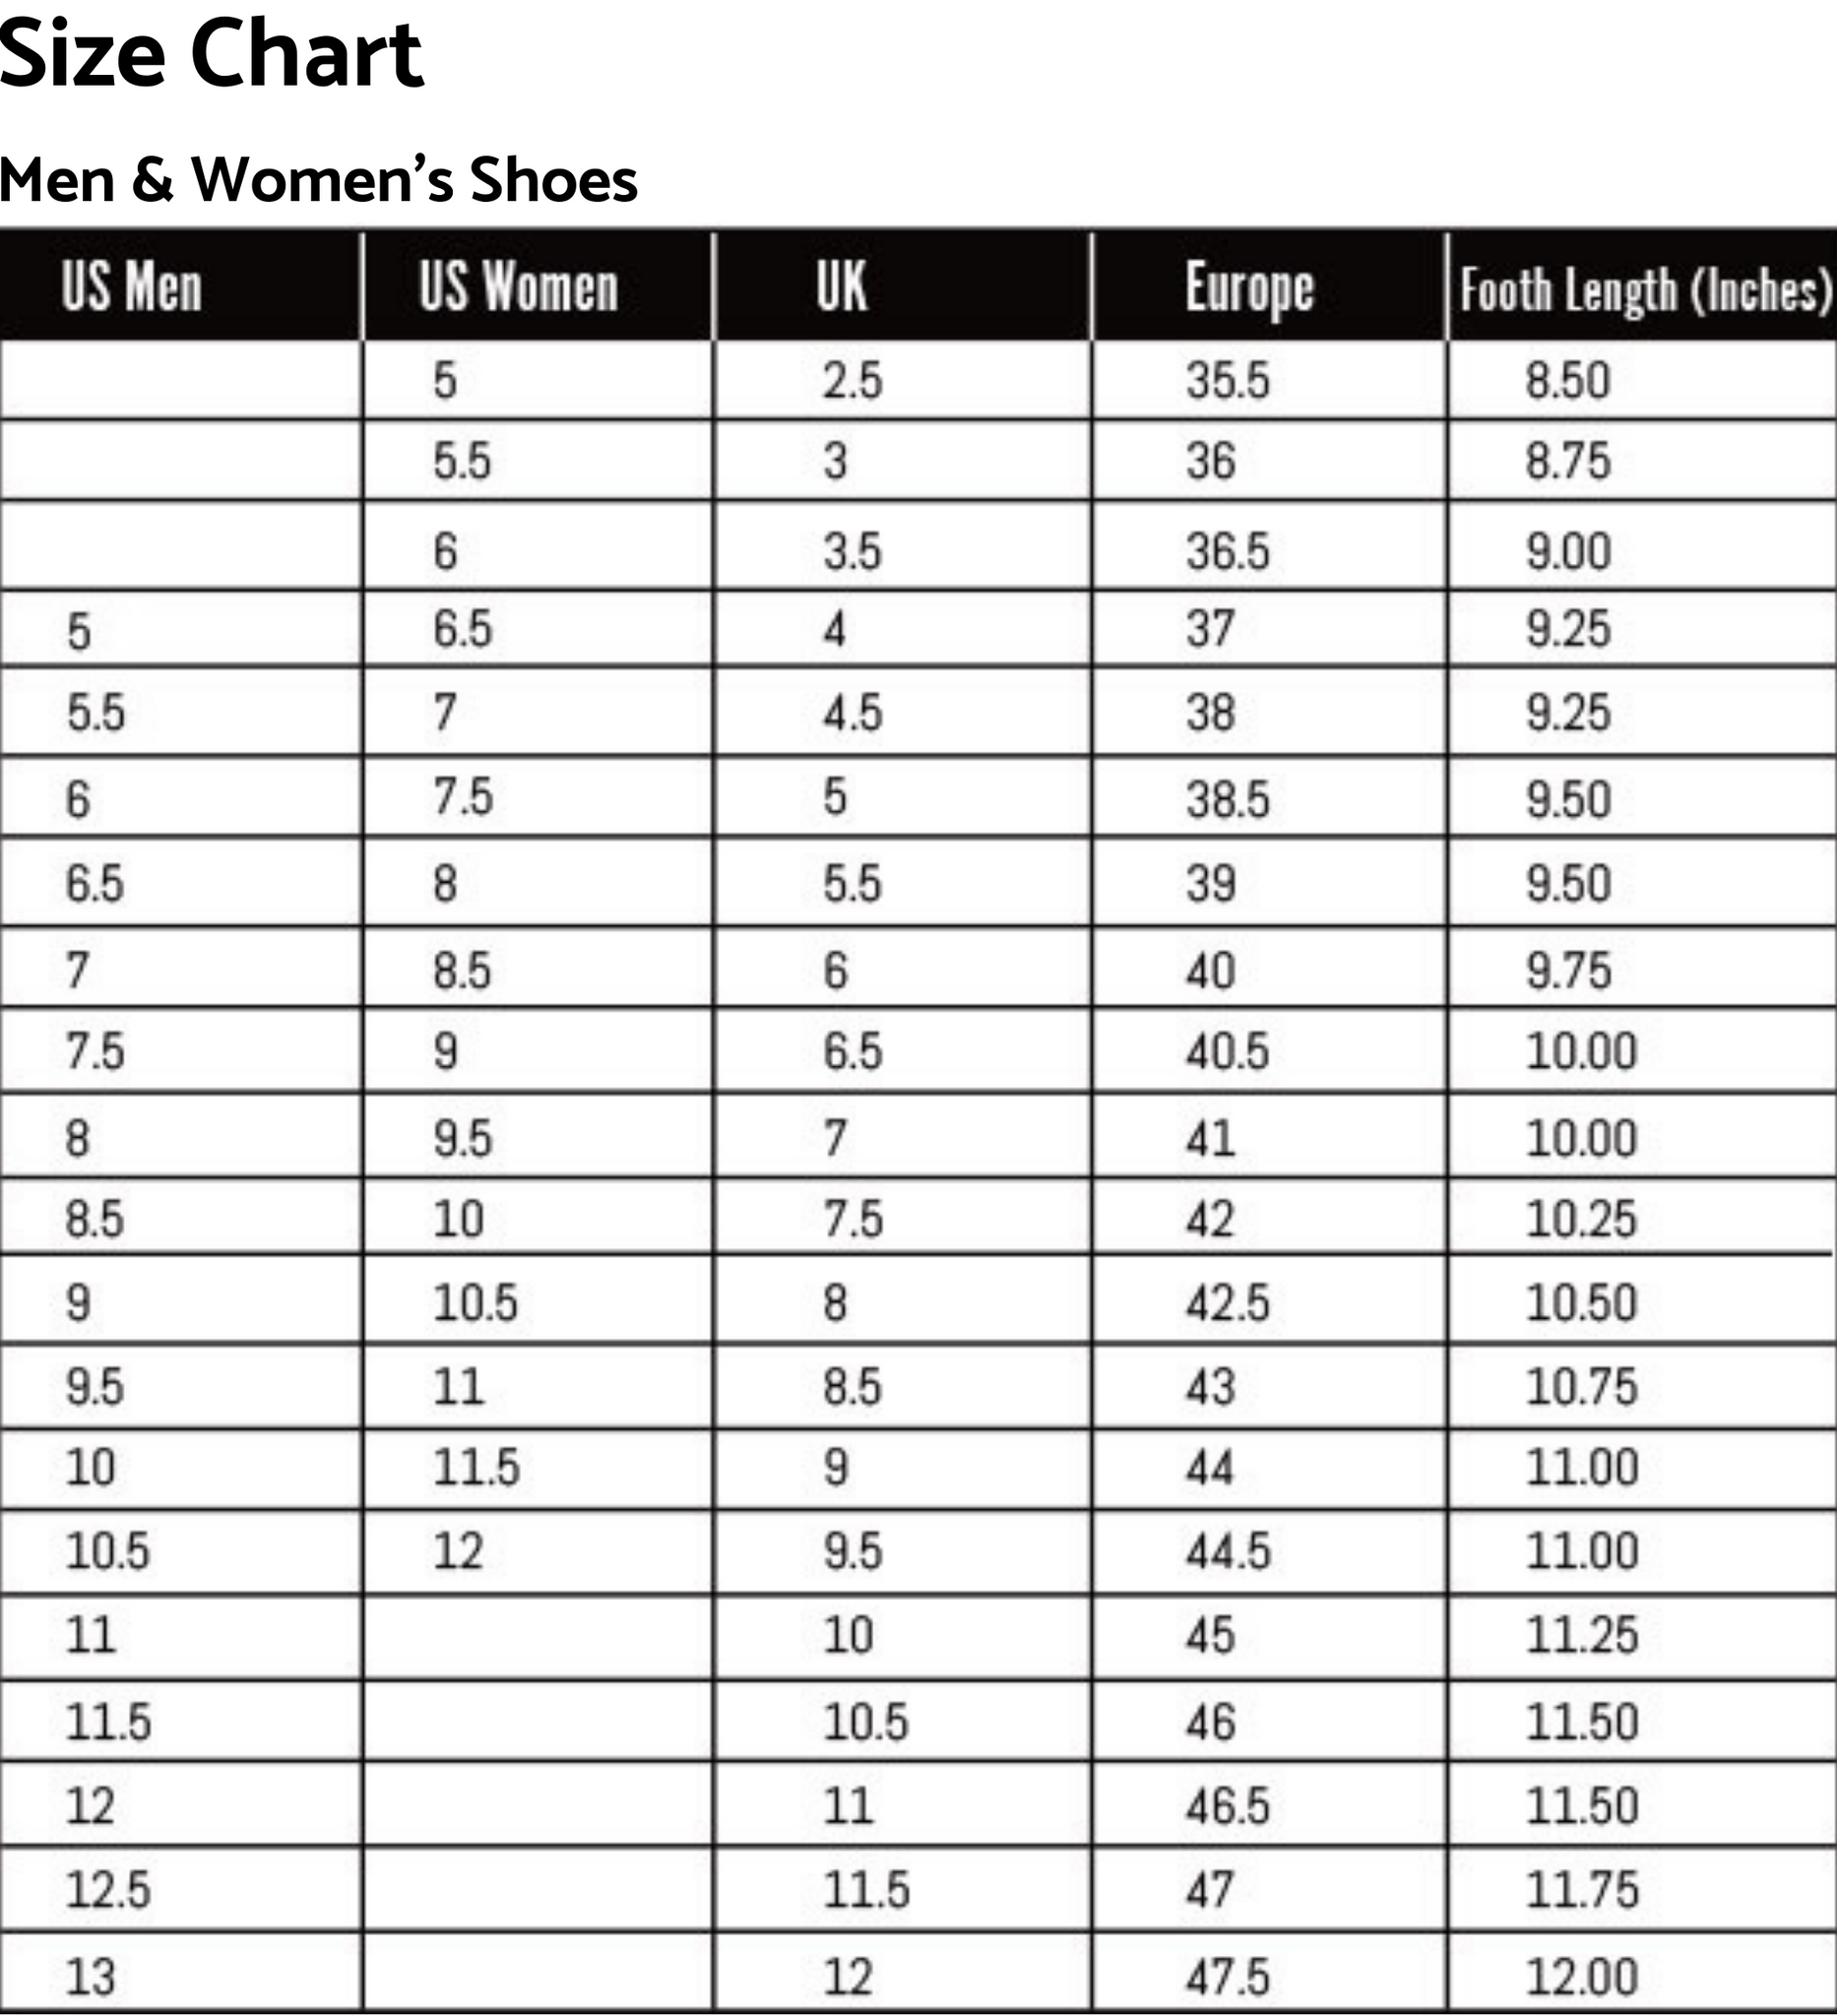 Men and Women's Shoes Size Guide